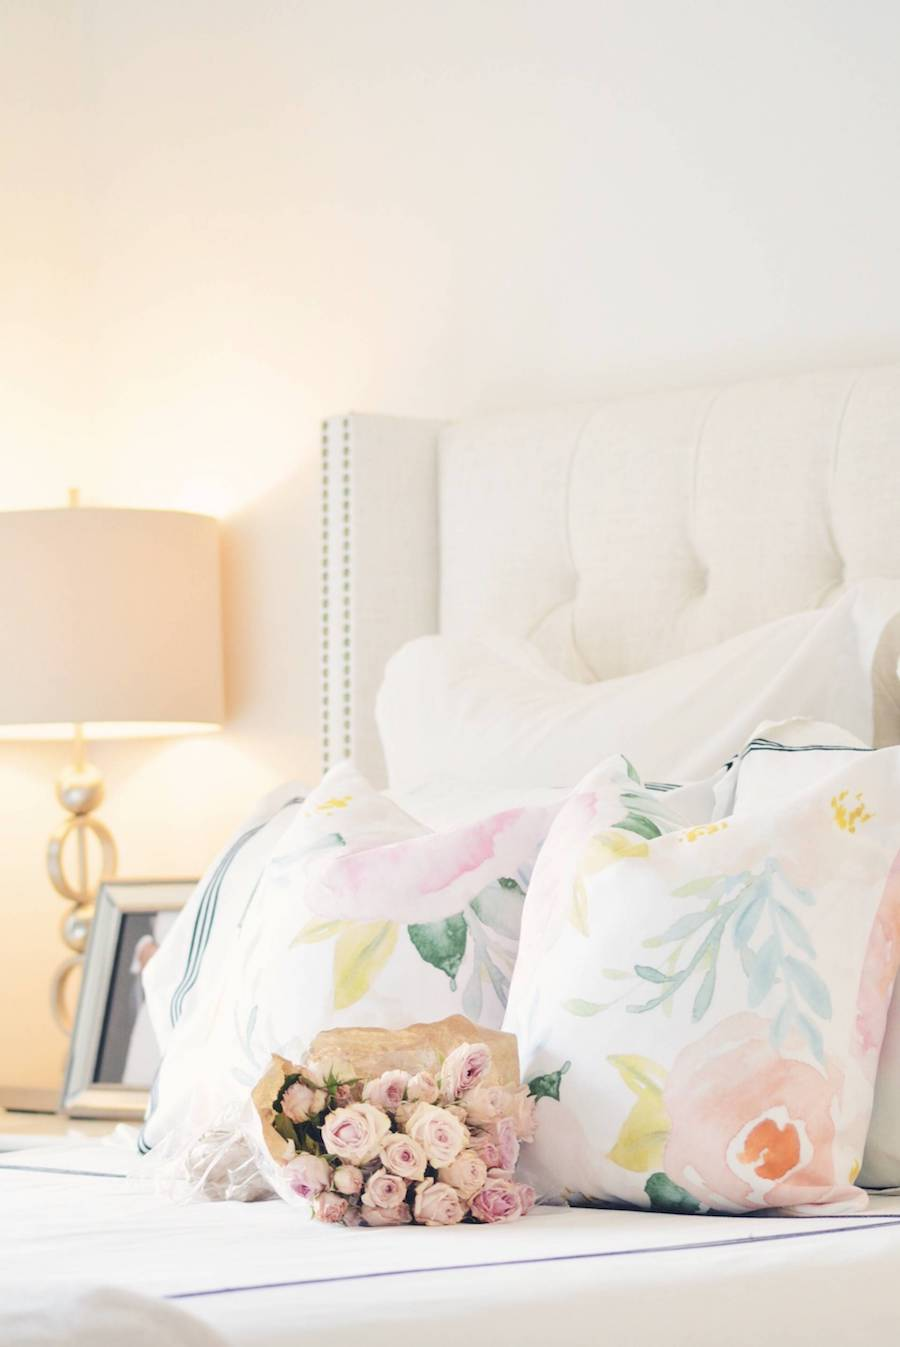 White bed with floral pillows